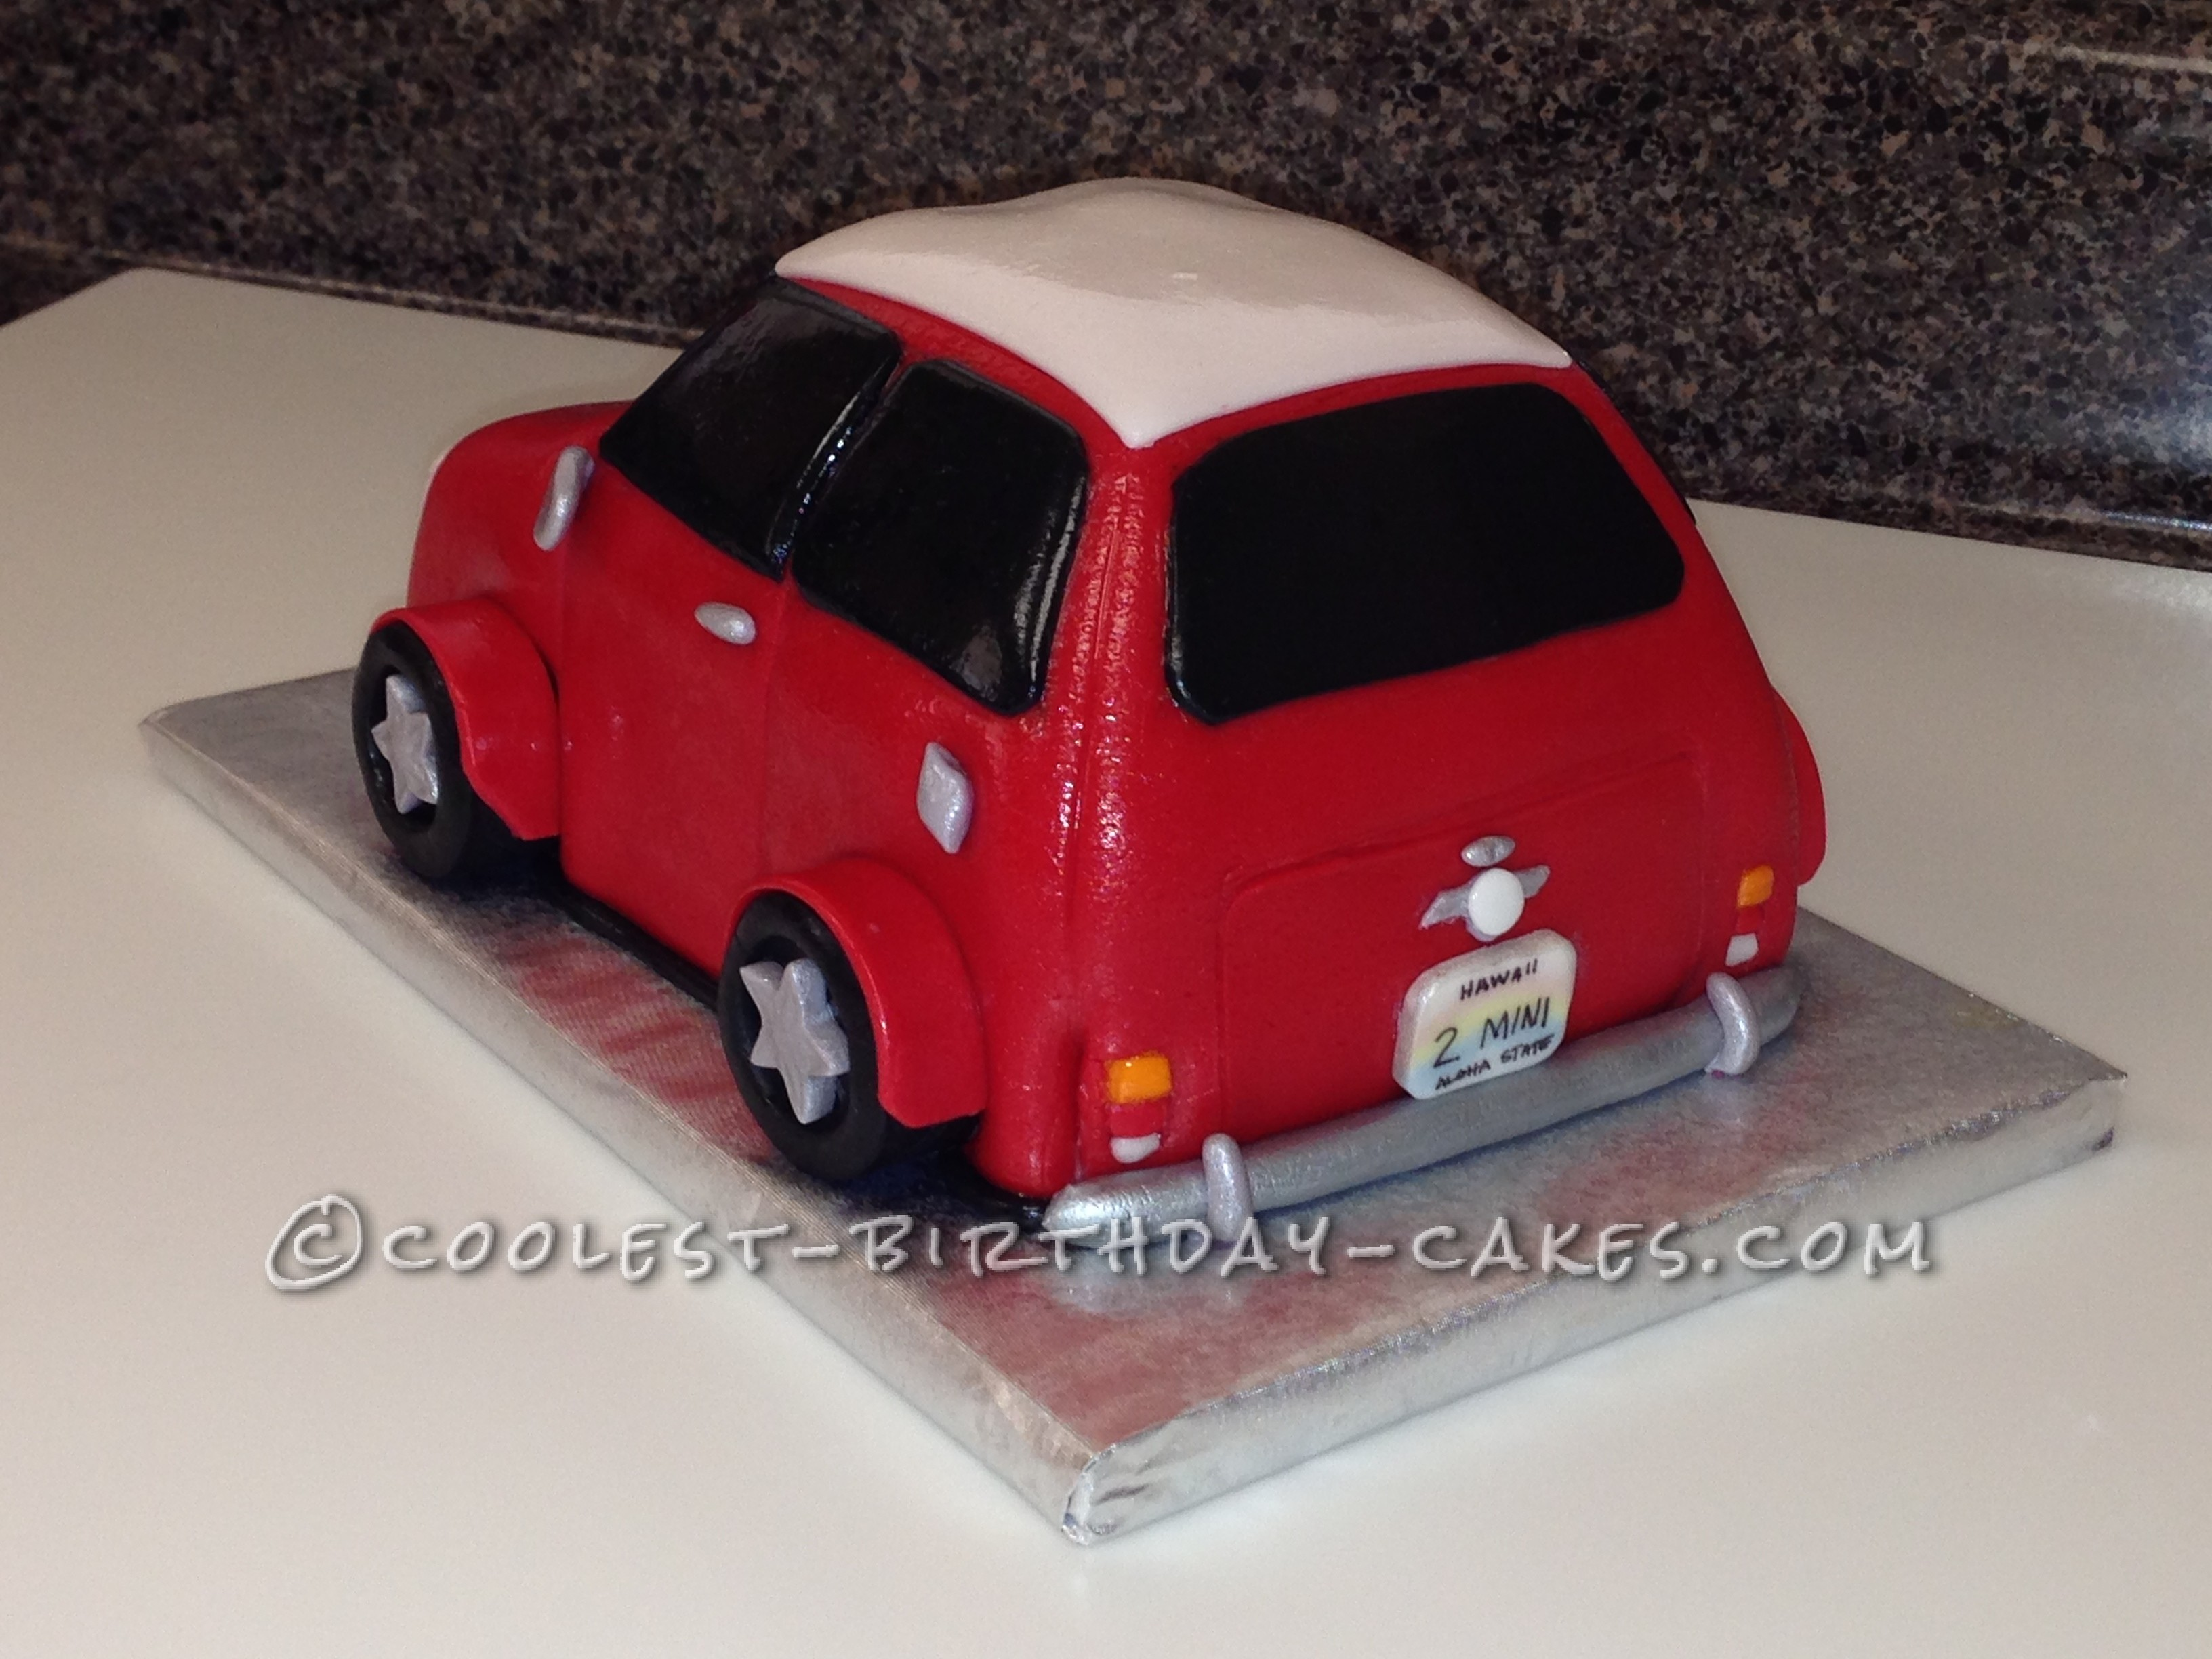 Coolest Austin Mini Cake